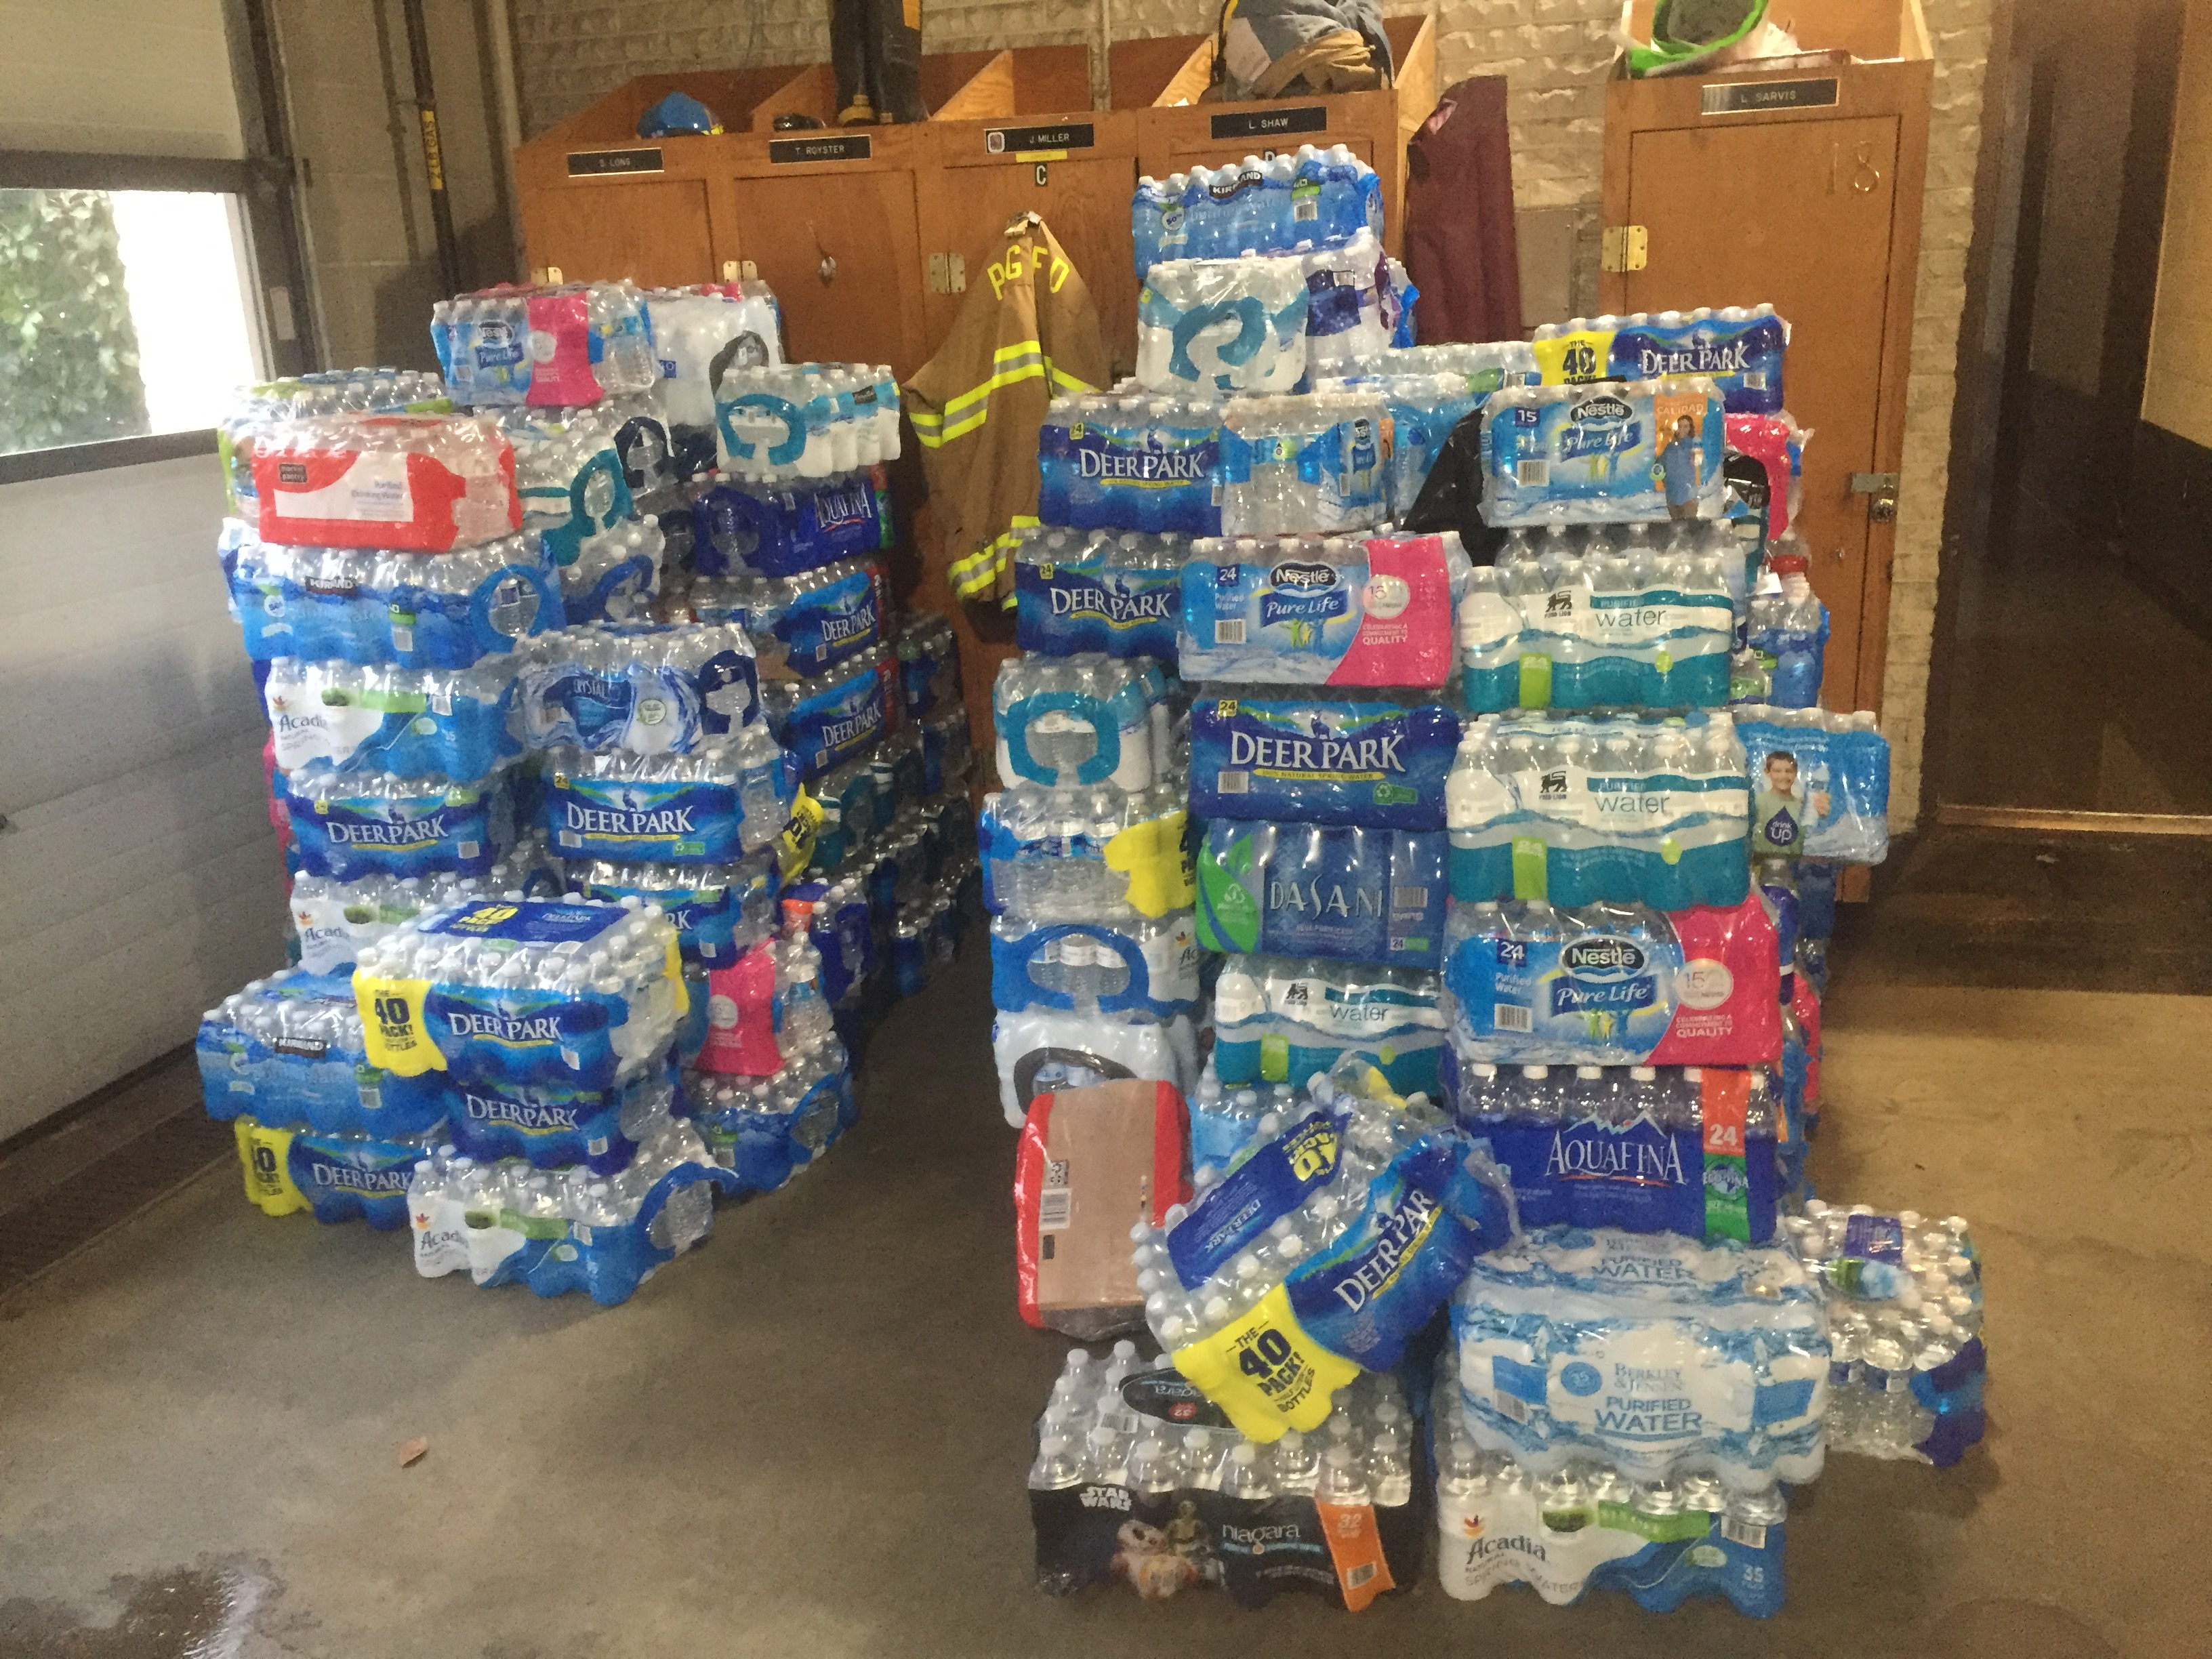 Prince George's Co. fire departments collecting water for Flint